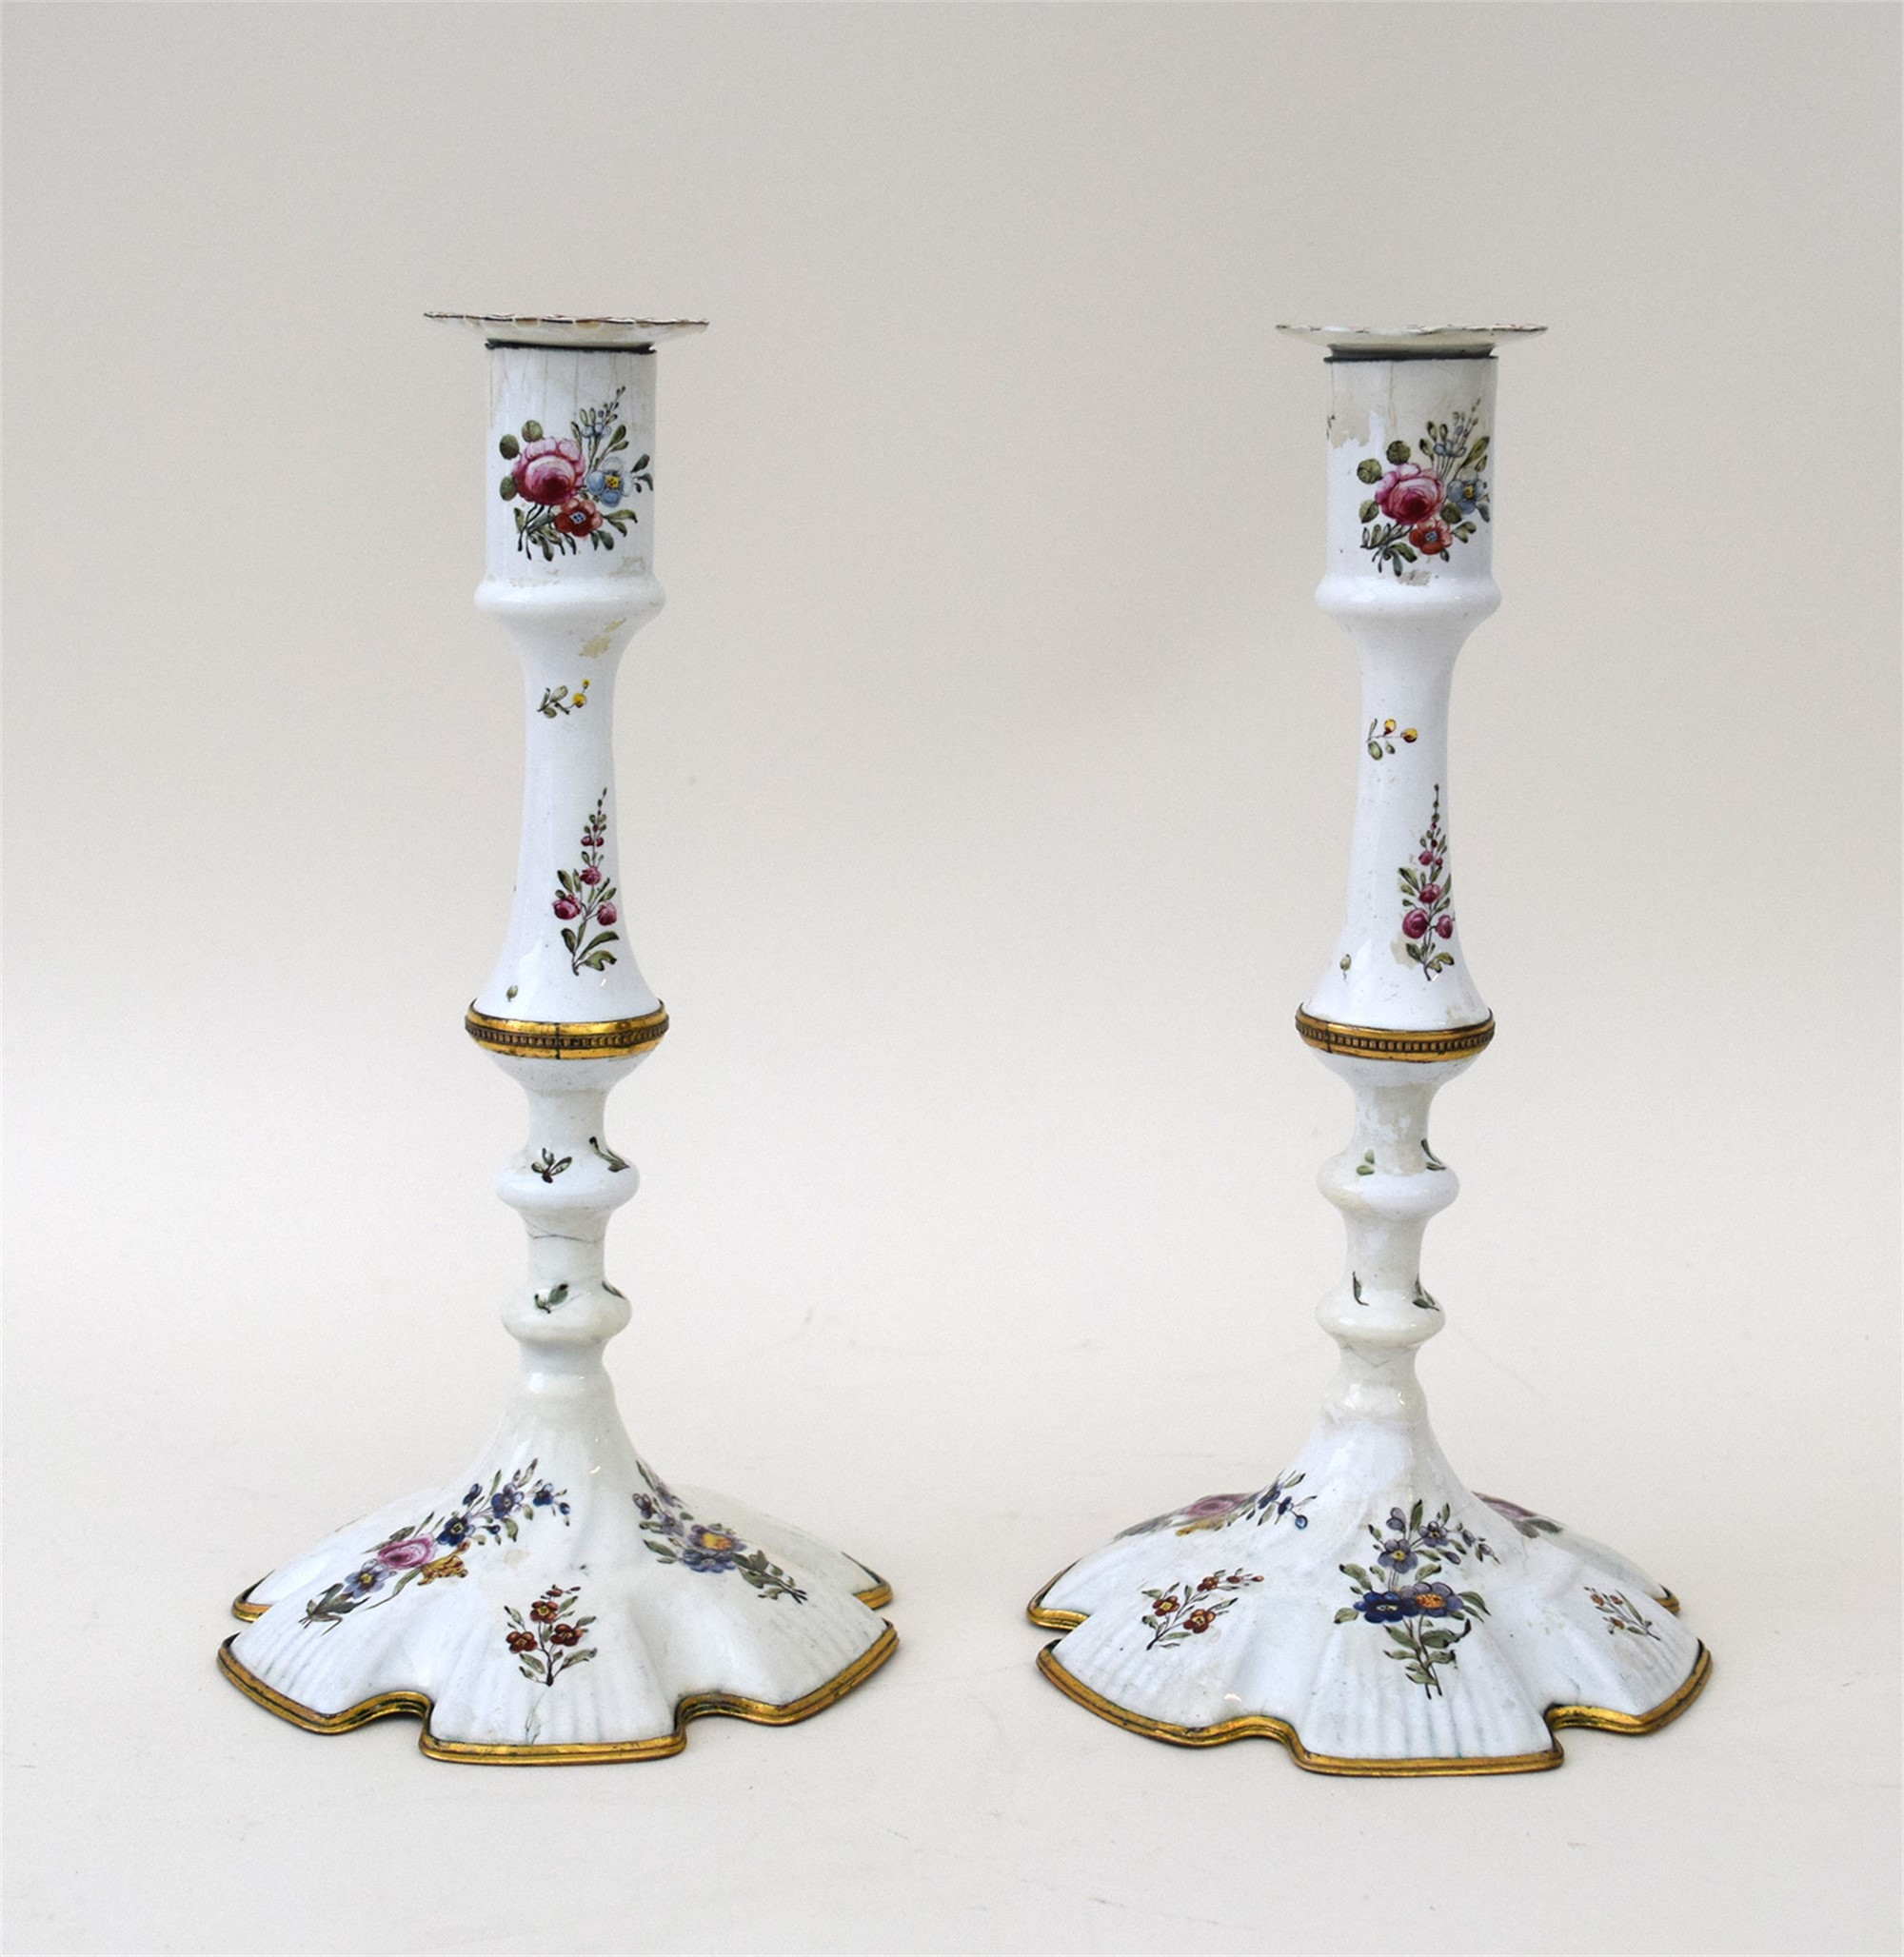 PAIR OF GILT-COPPER-MOUNTED SOUTH STAFFORDSHIRE ENAMEL CANDLESTICKS, PROBABLY BILSTON